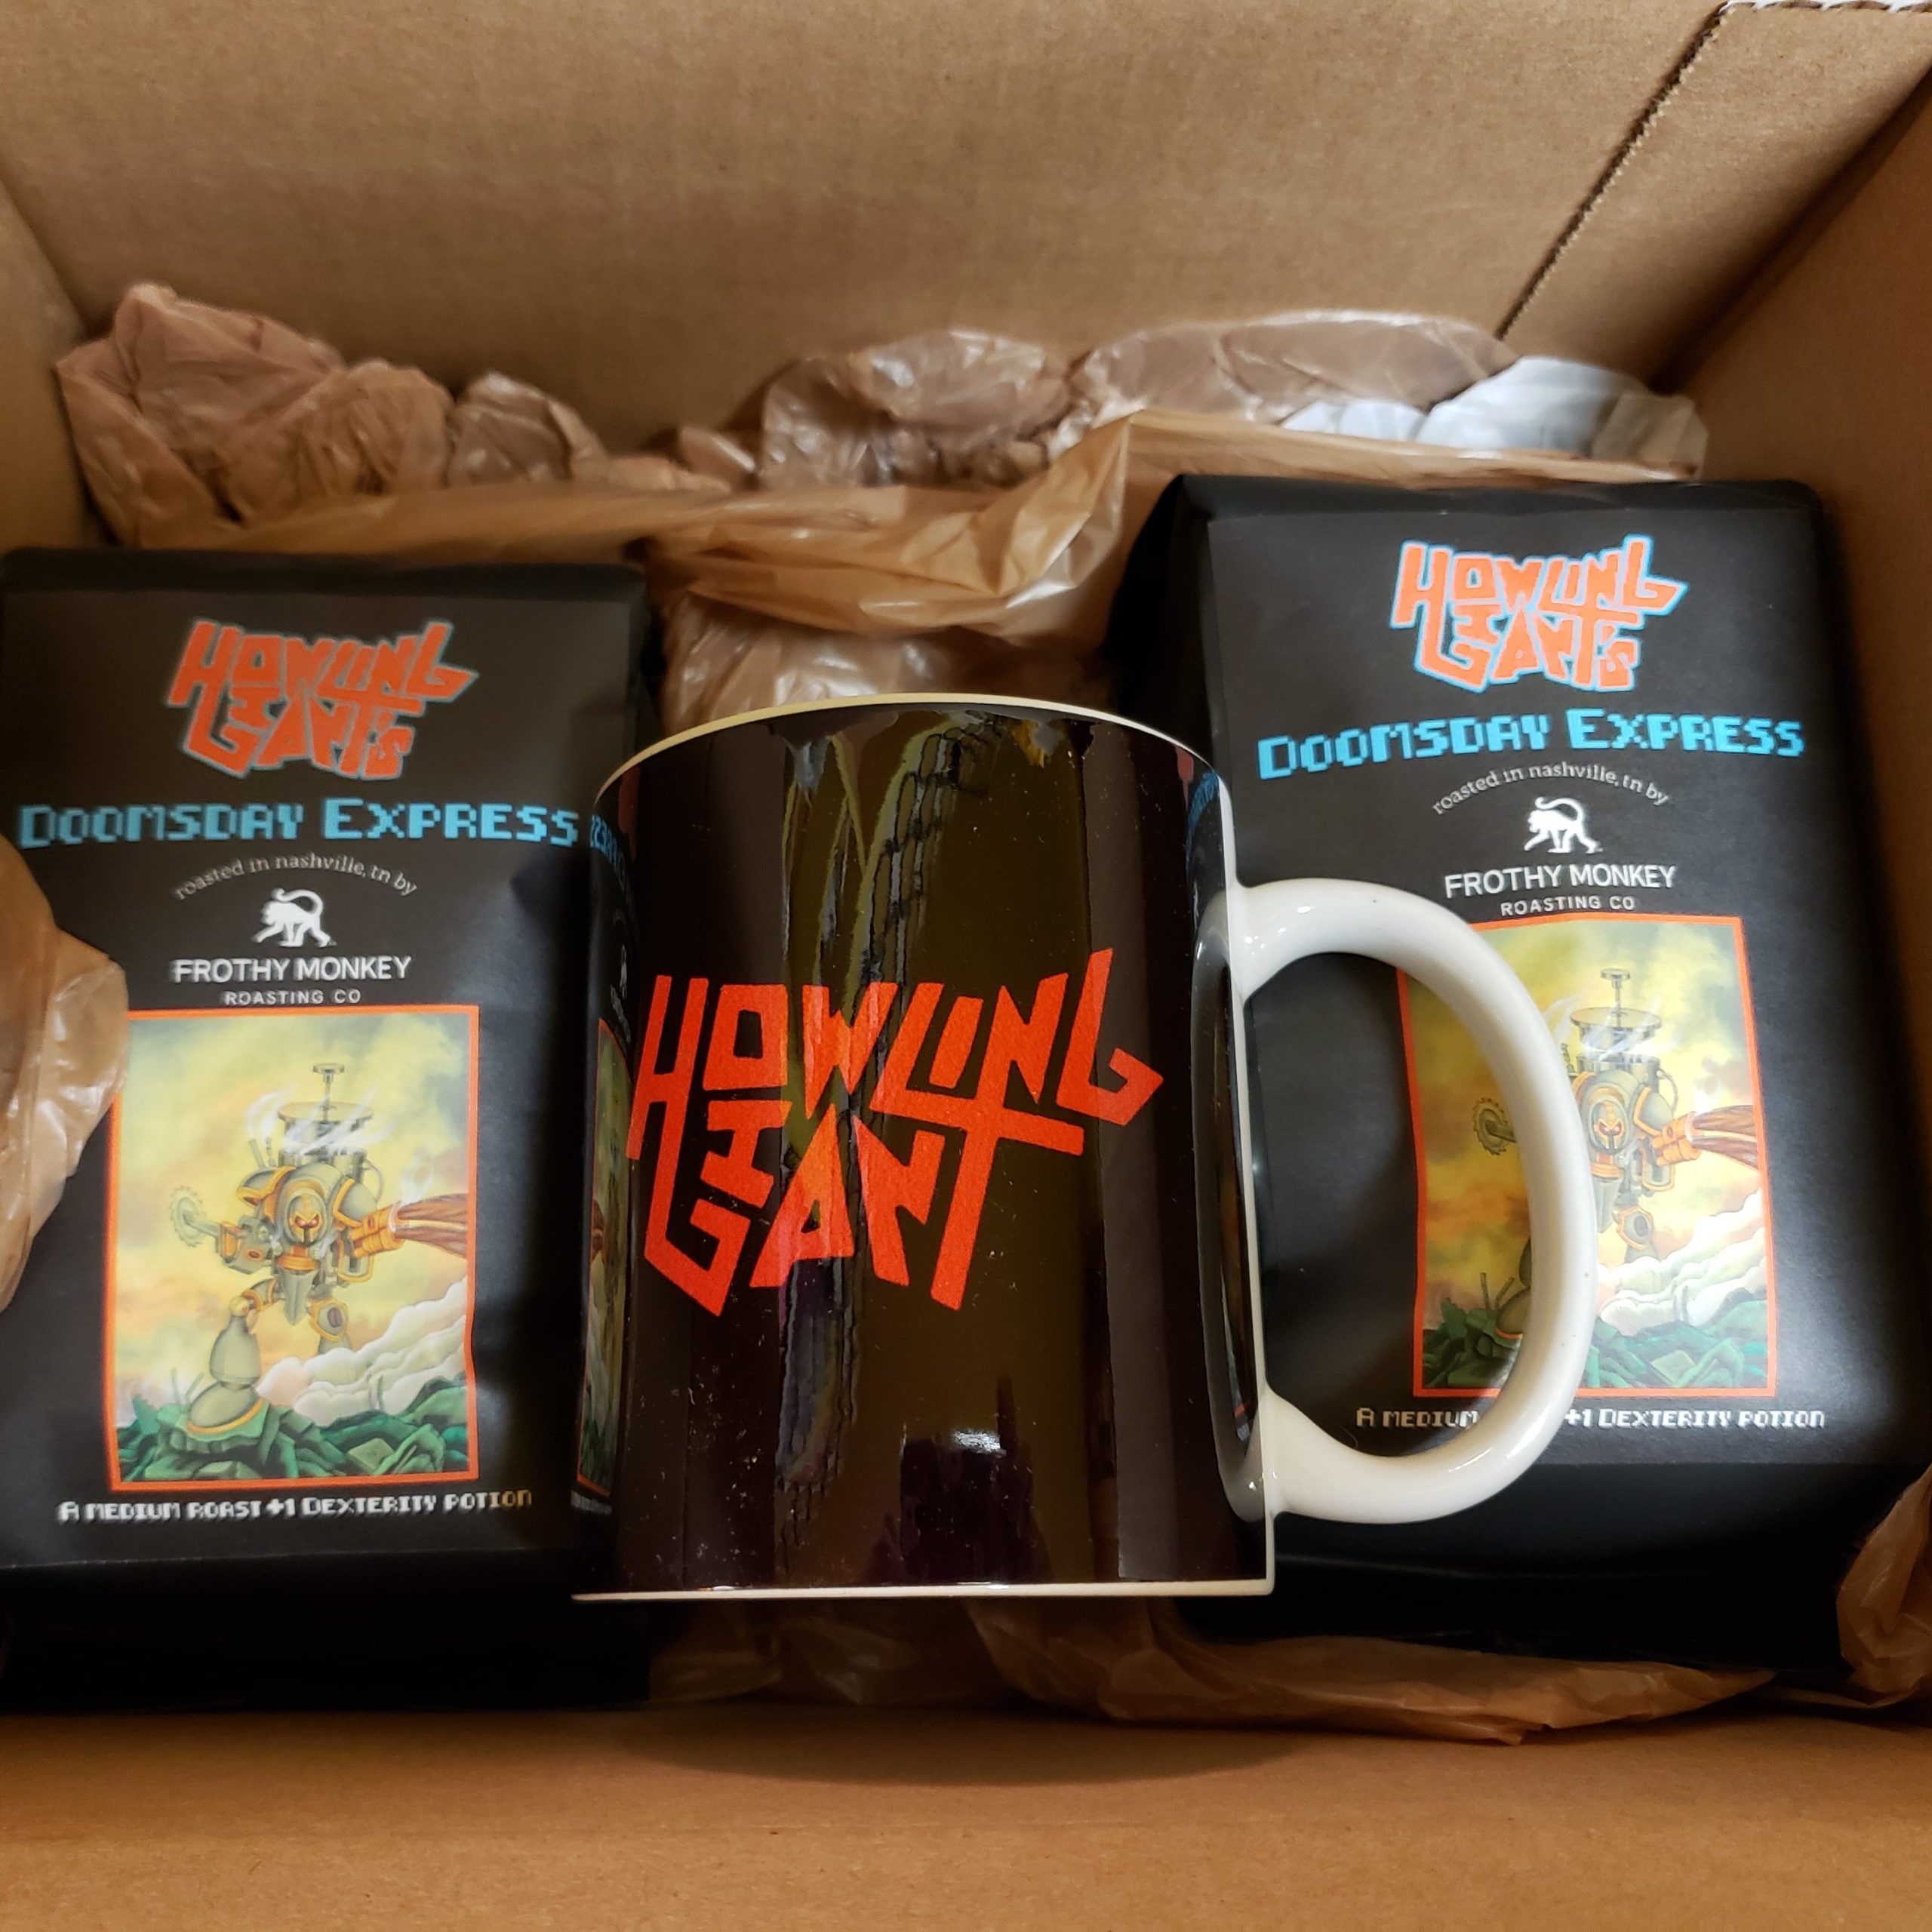 howling giant coffee bags in box